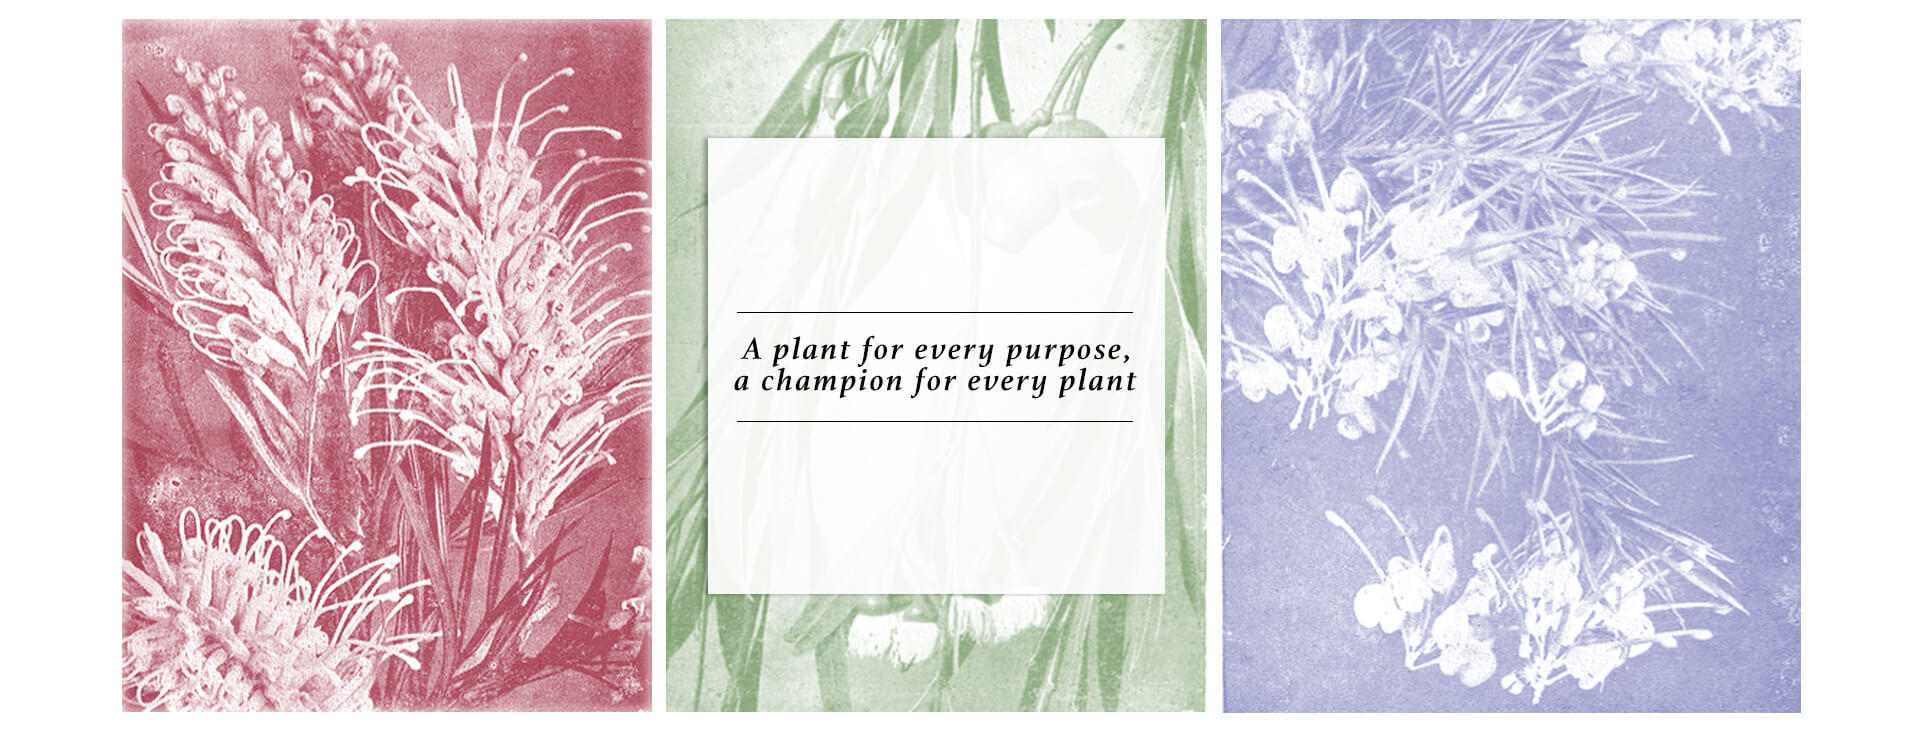 A plant for every purpose, a champion for every plant